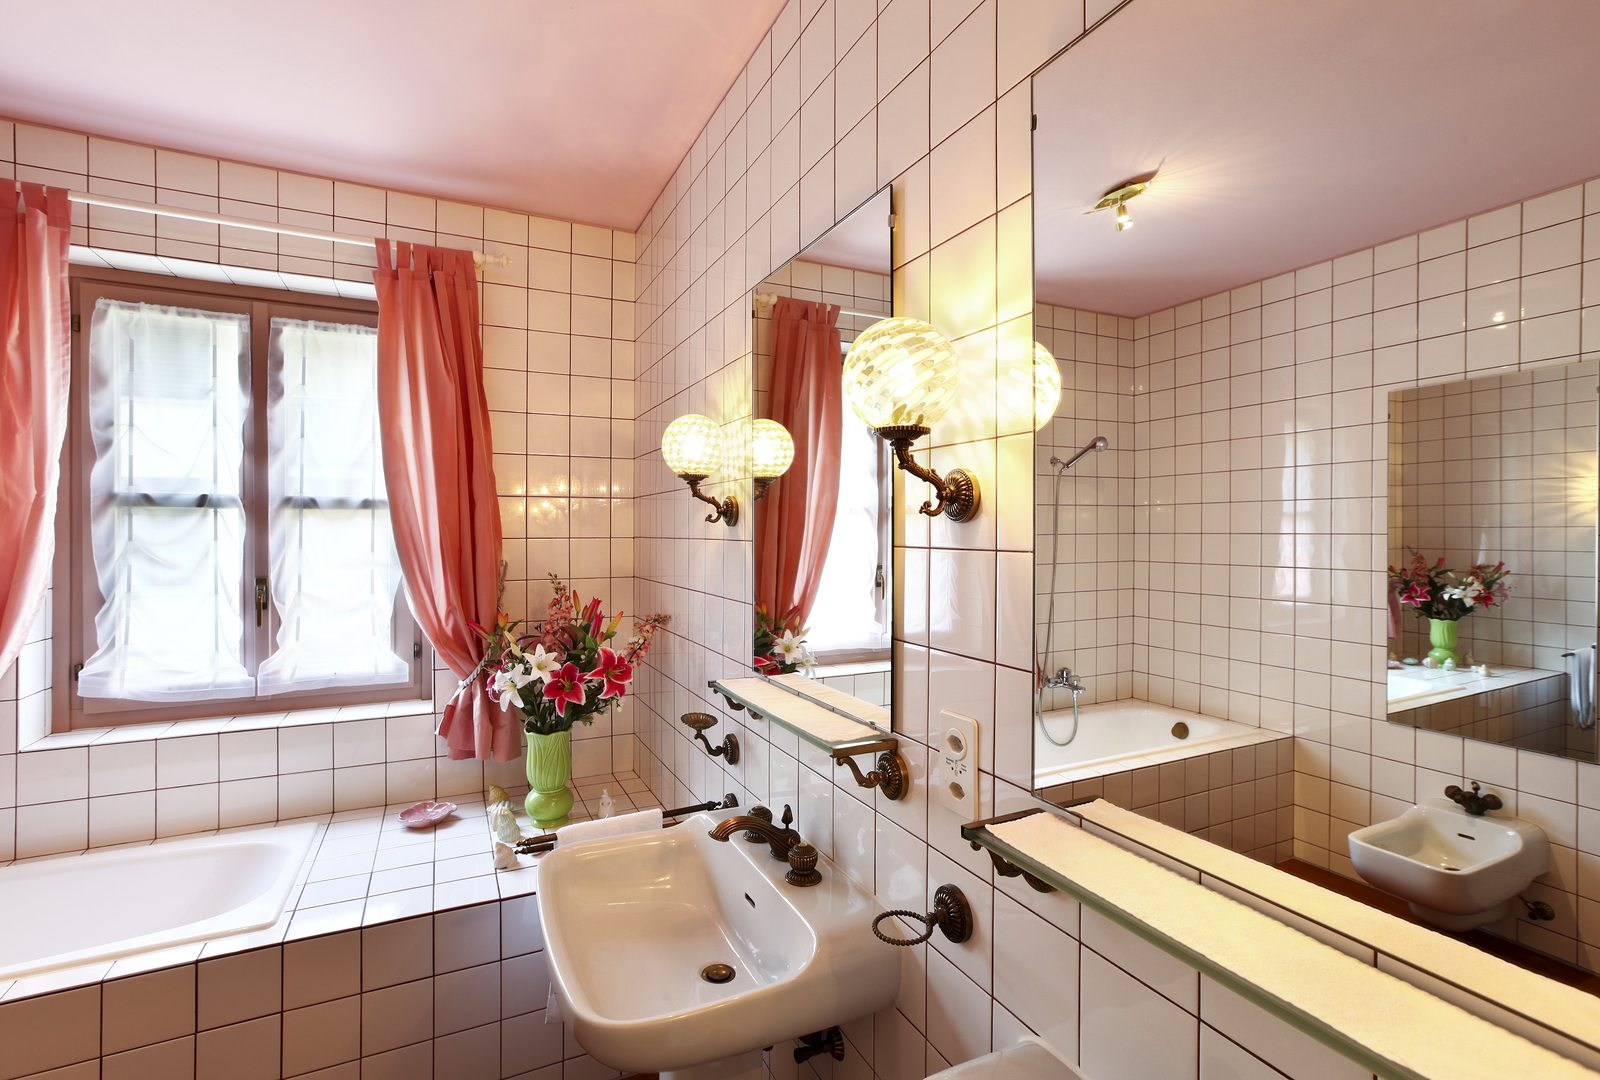 lovely bathroom in style classical, lights